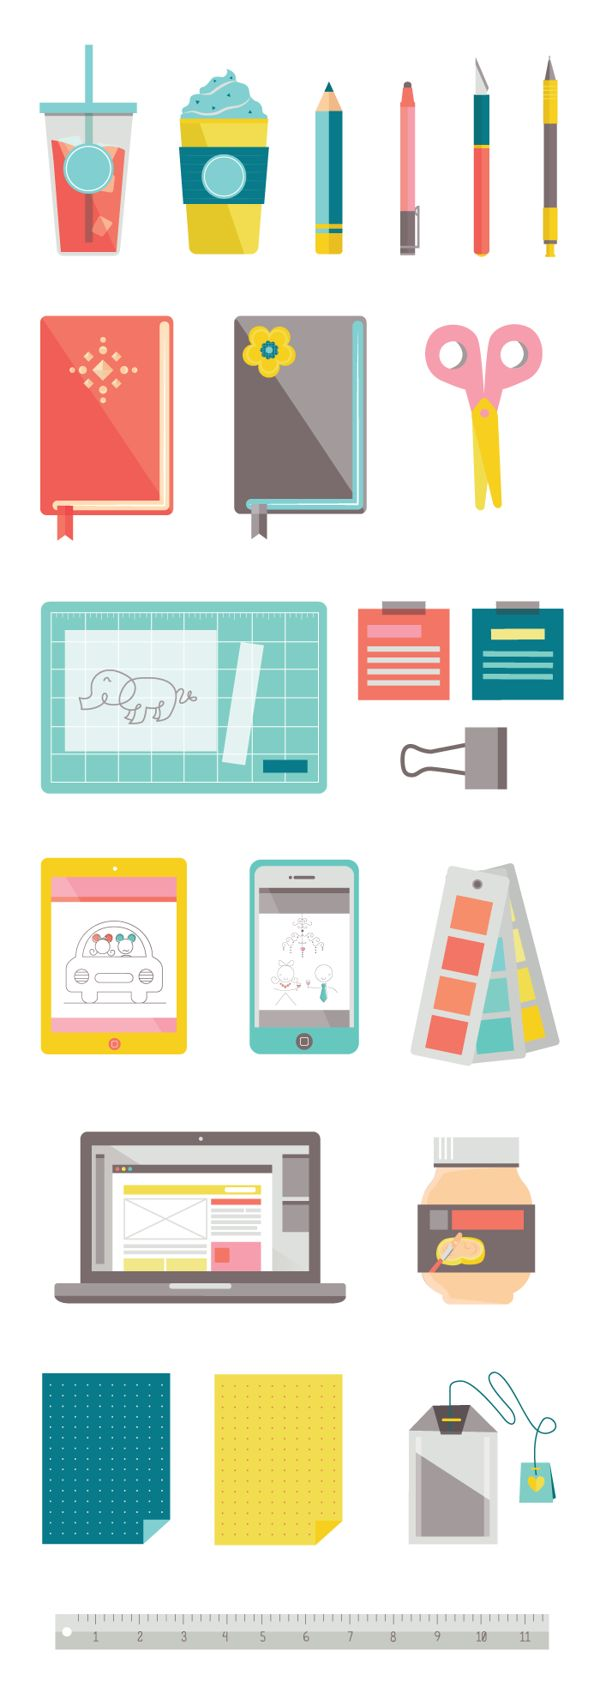 Personal Icons by Jucelle Lim, via Behance